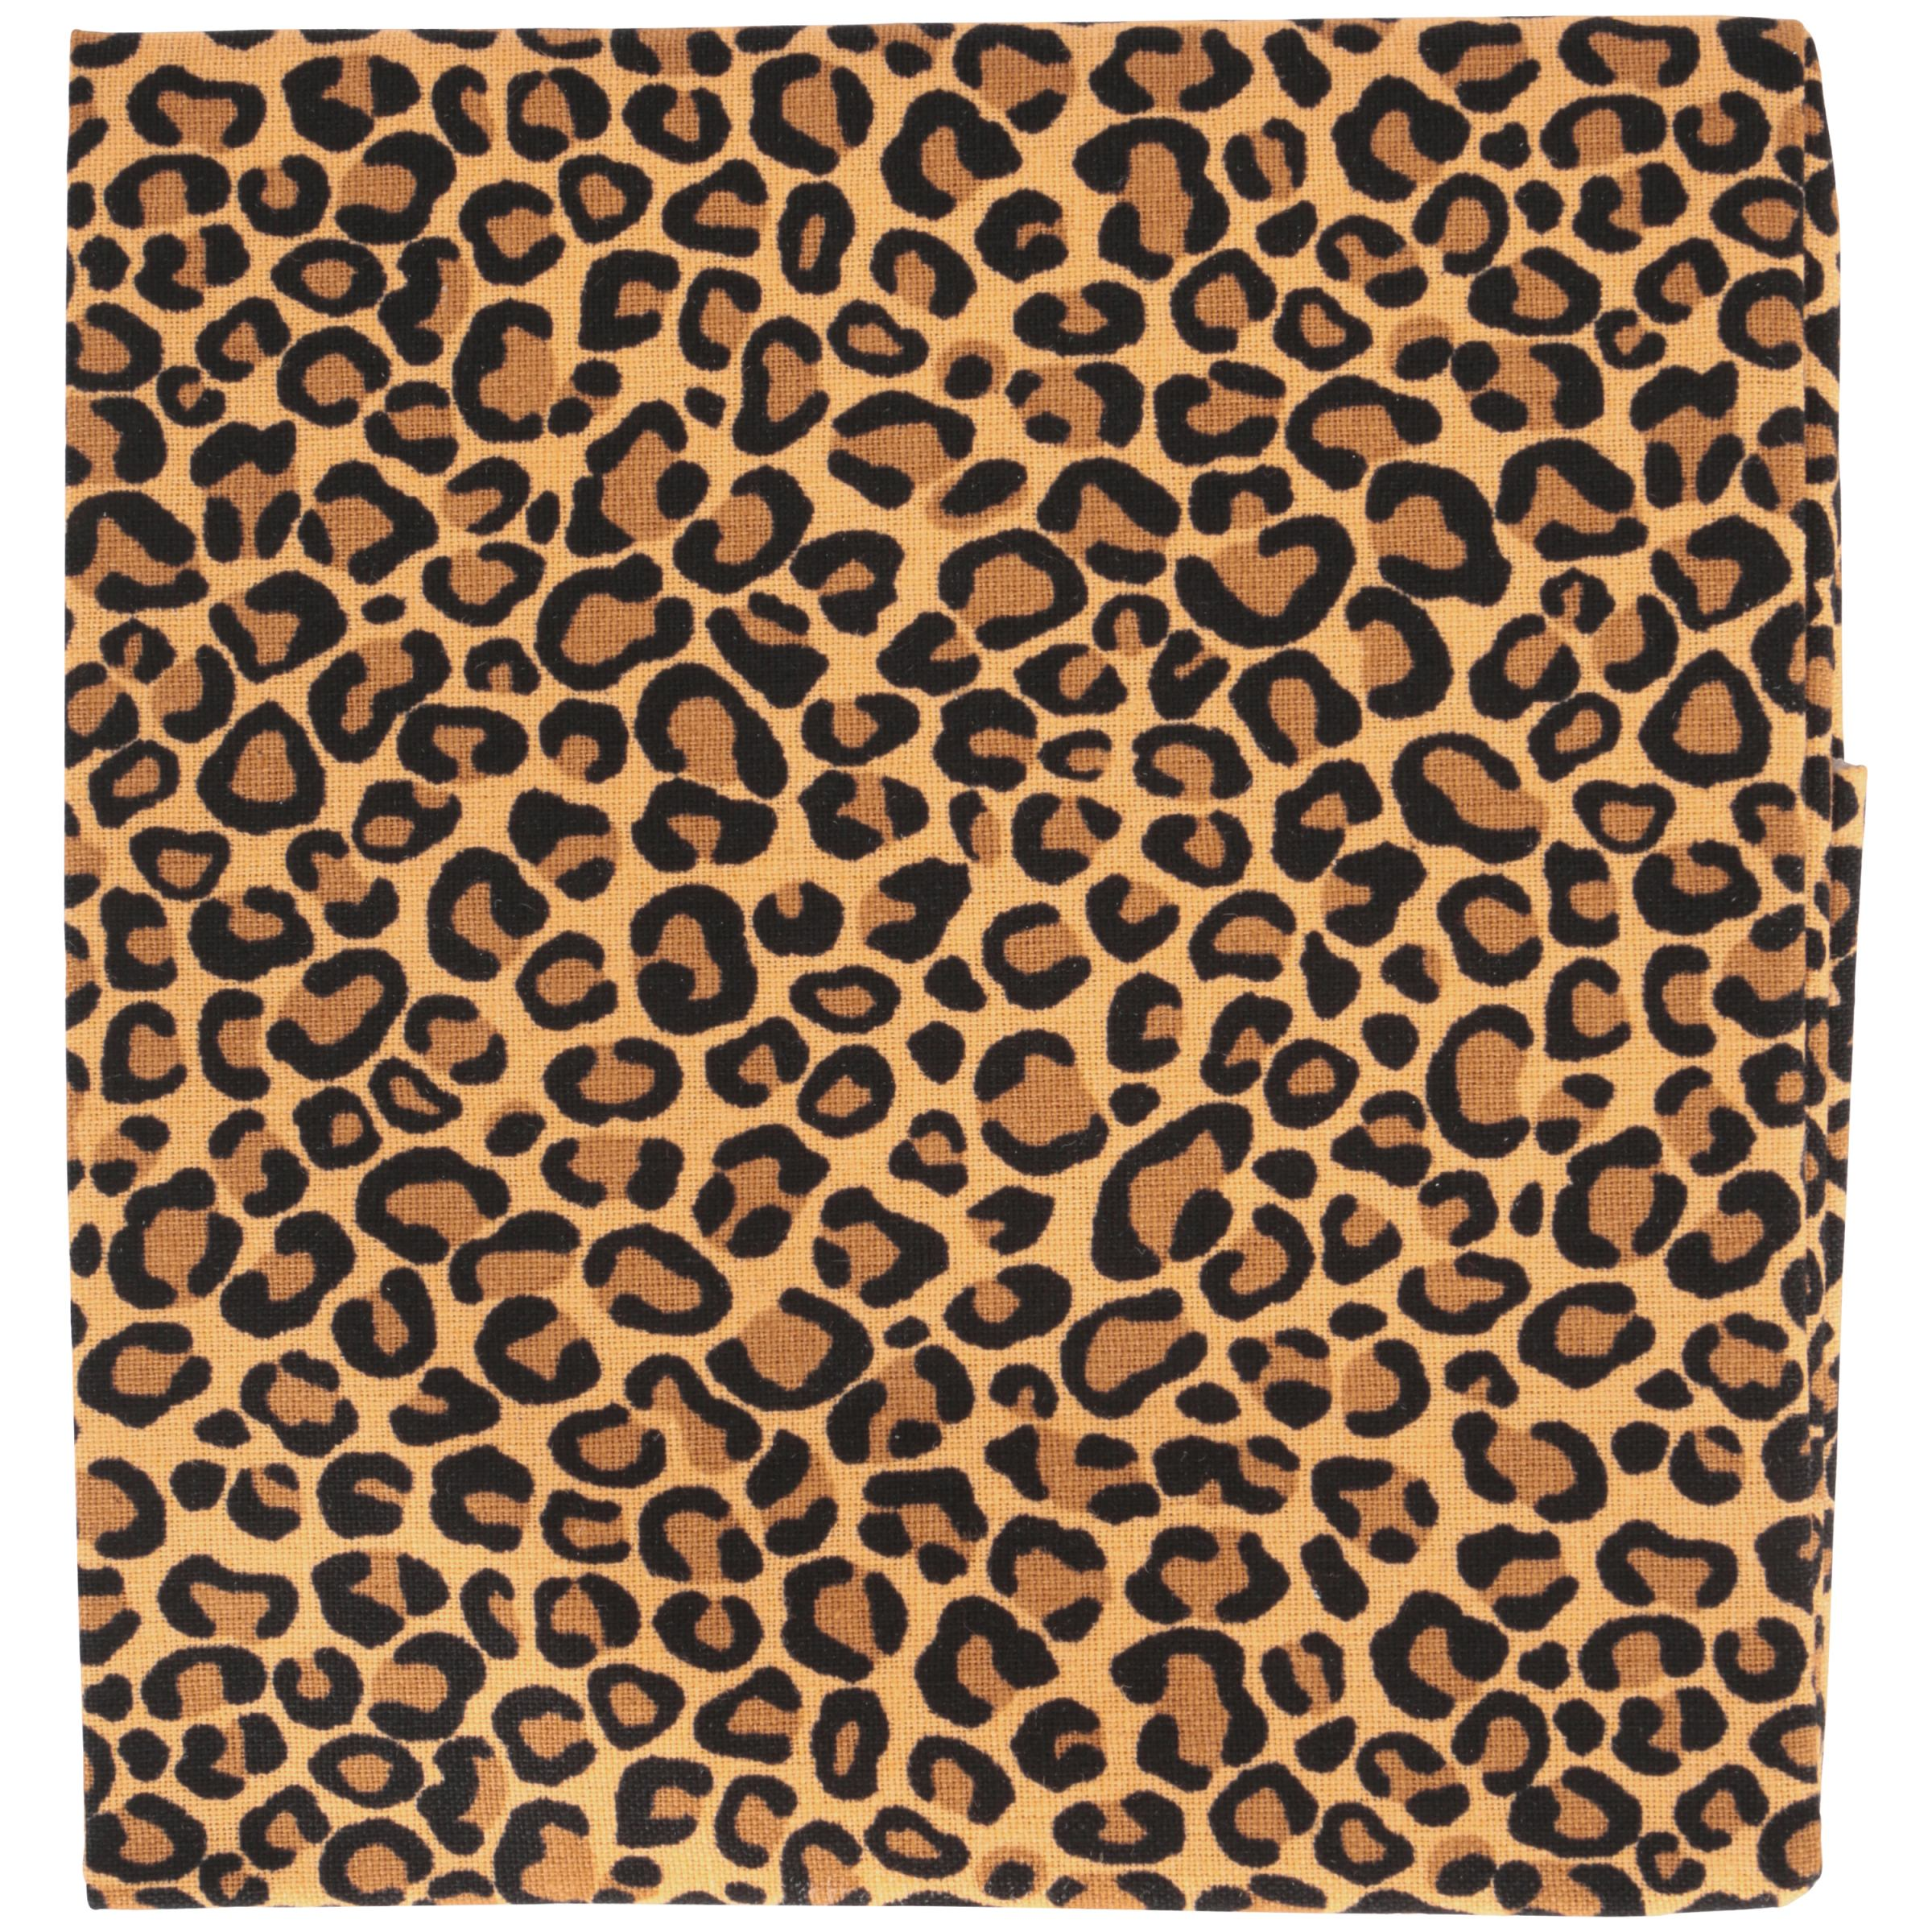 "Fabric Editions- Cotton Fabric, Fat Quarter, 18"" x 21"" CHEETAH GINGER"